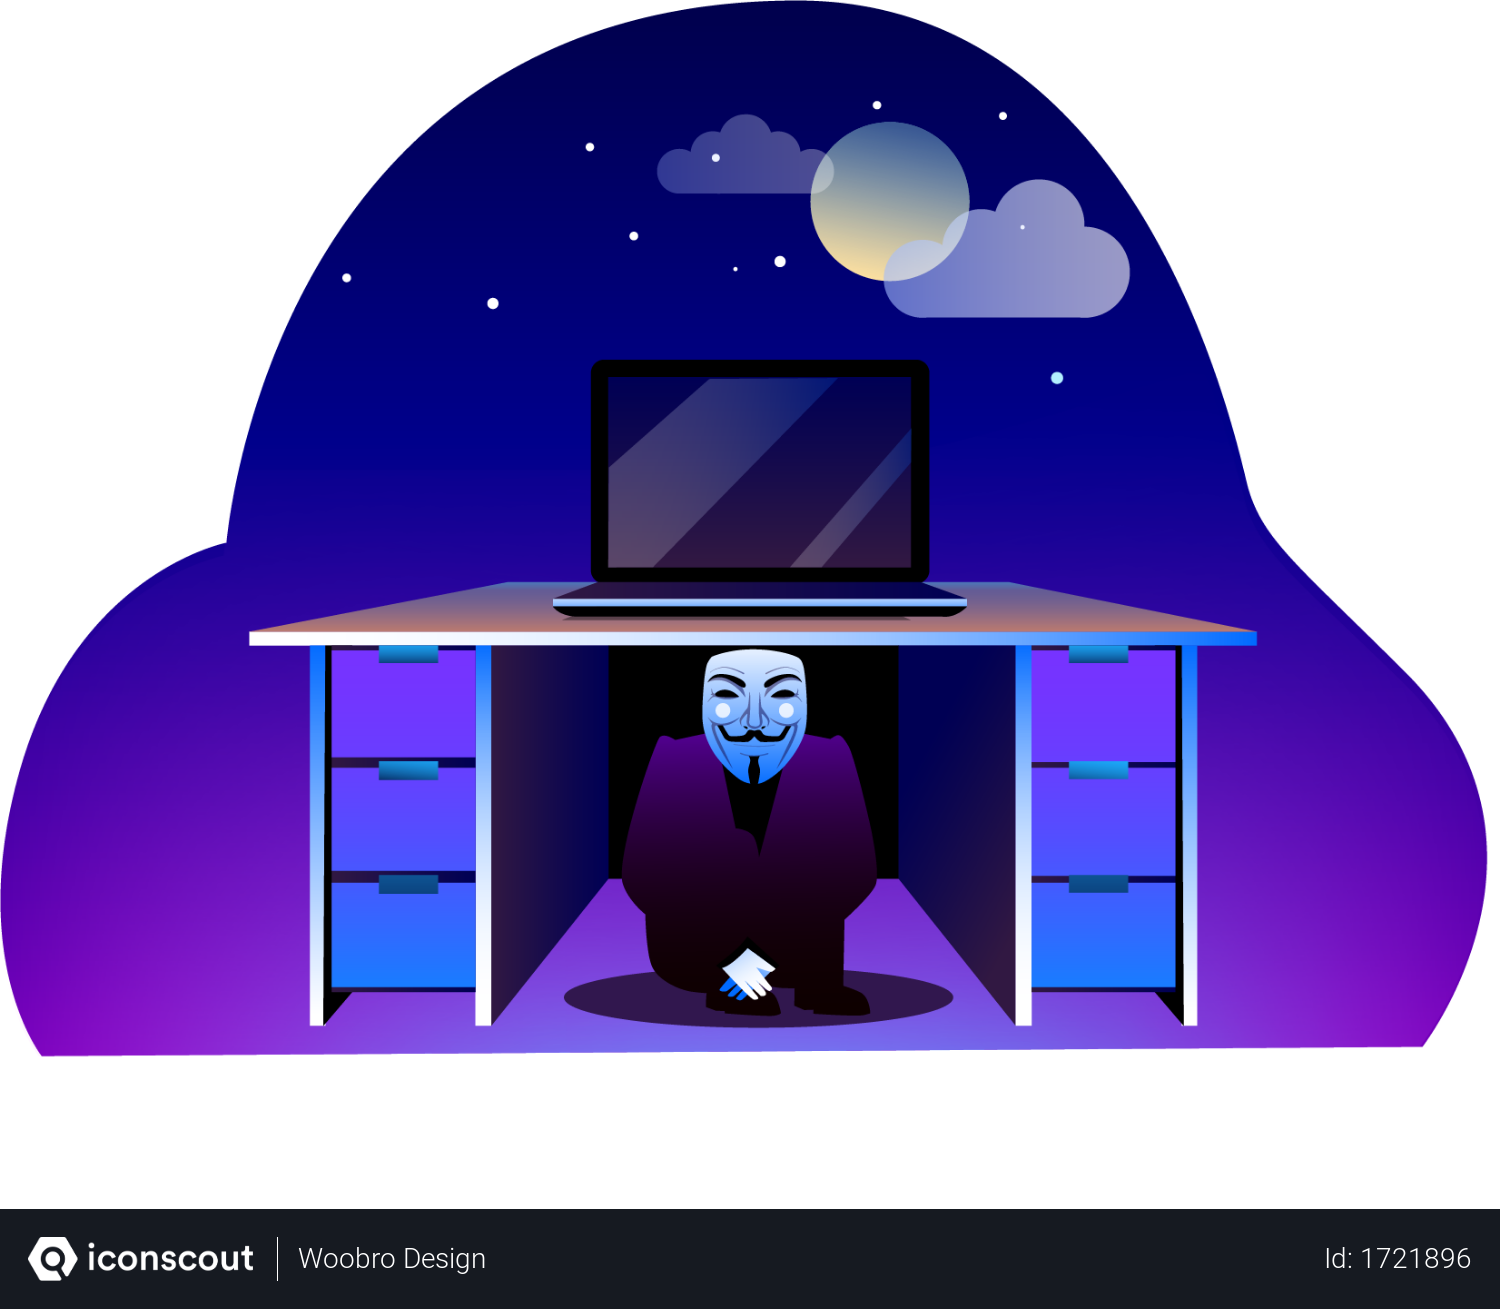 free hacker illustration download in png vector format hacker illustration download in png